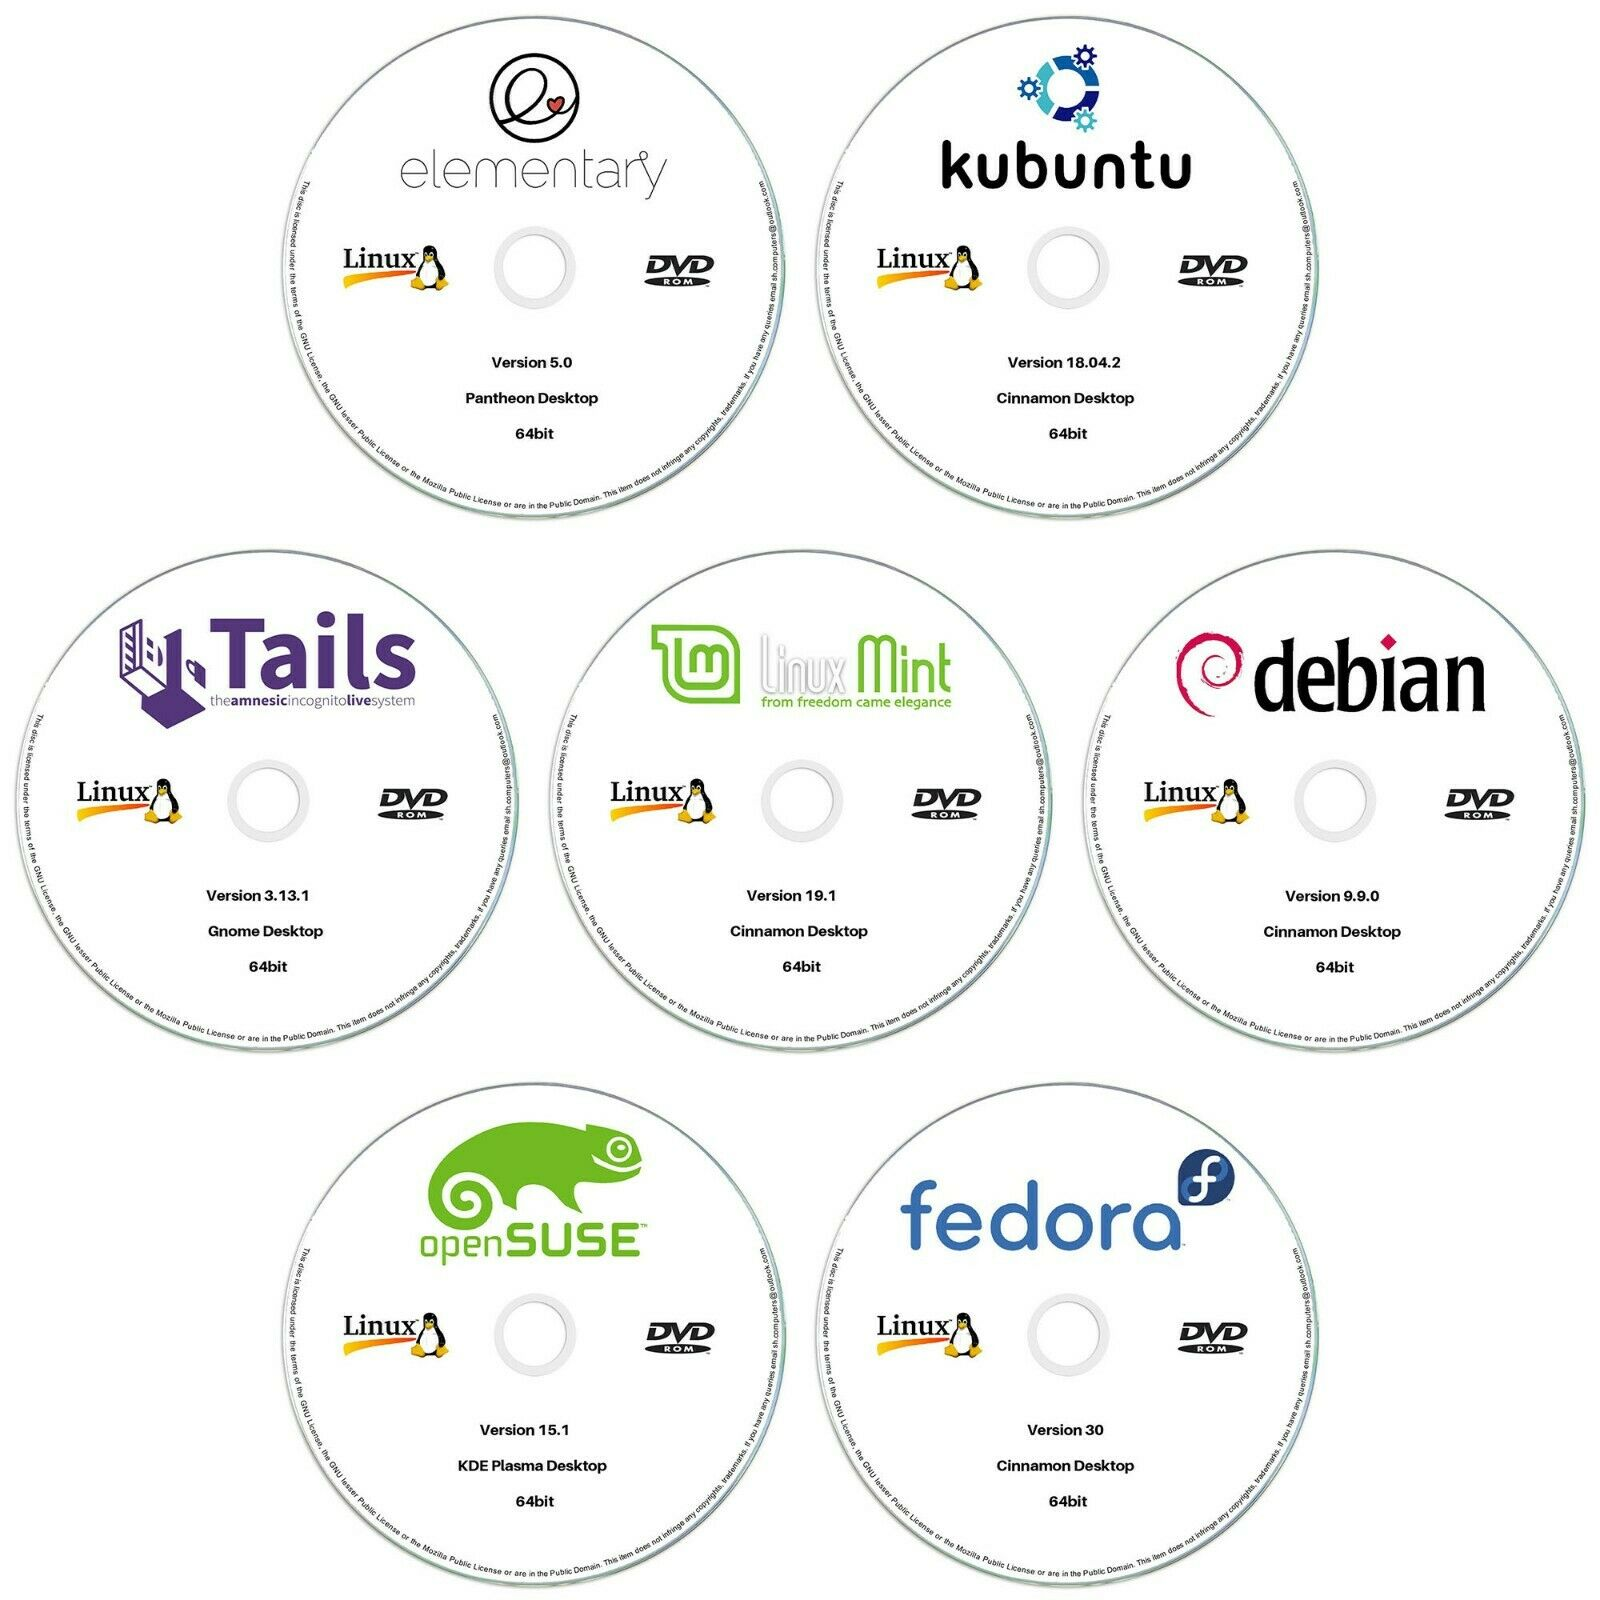 7 x Linux DVD Collection 64bit Kubuntu, Linux Mint, Debian, OpenSUSE & More